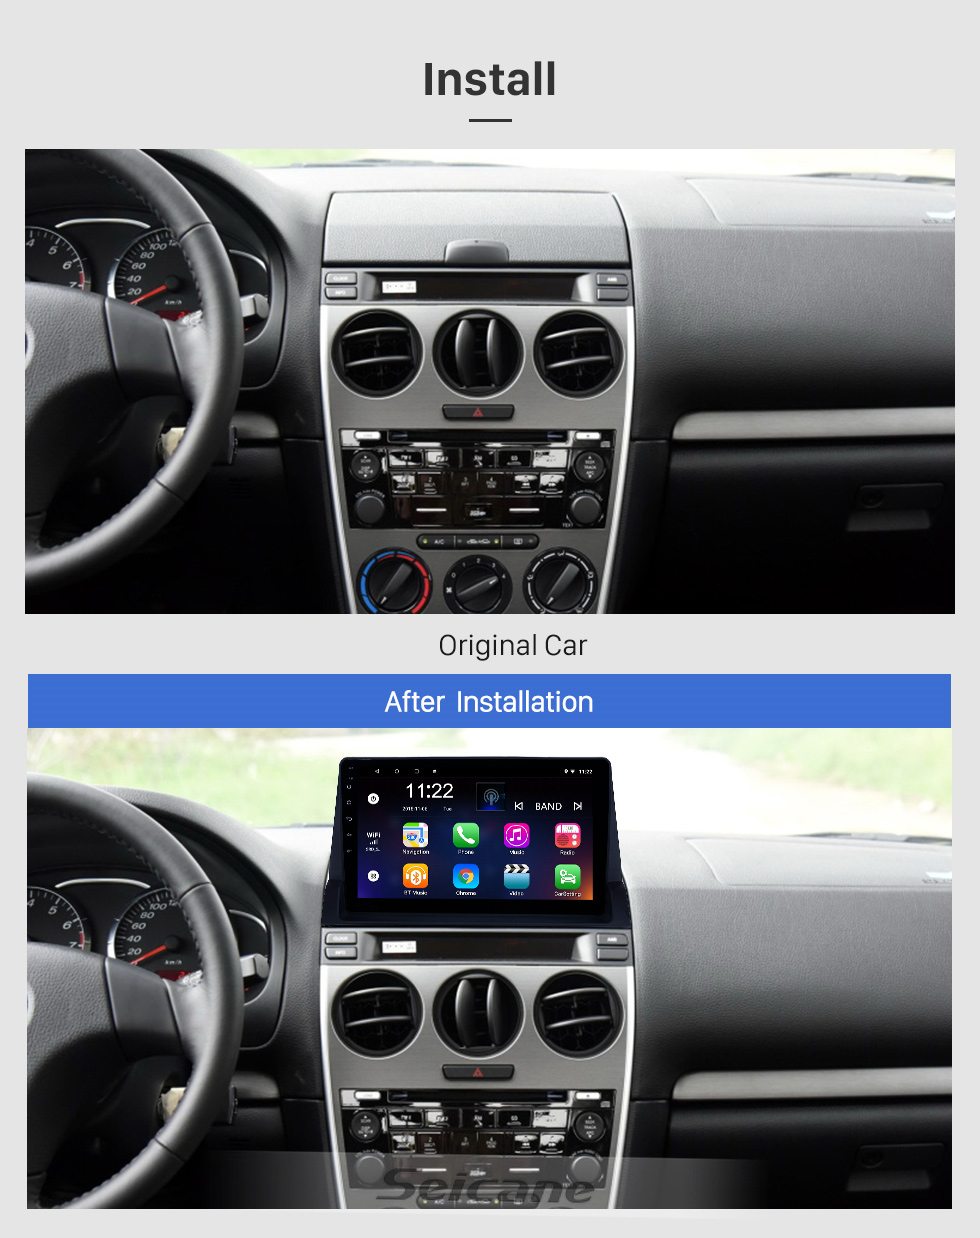 Seicane 10.1 inch Android 8.1 GPS Navigation Radio for 2002-2008 Old Mazda 6 with HD Touchscreen Bluetooth support Carplay Steering Wheel Control